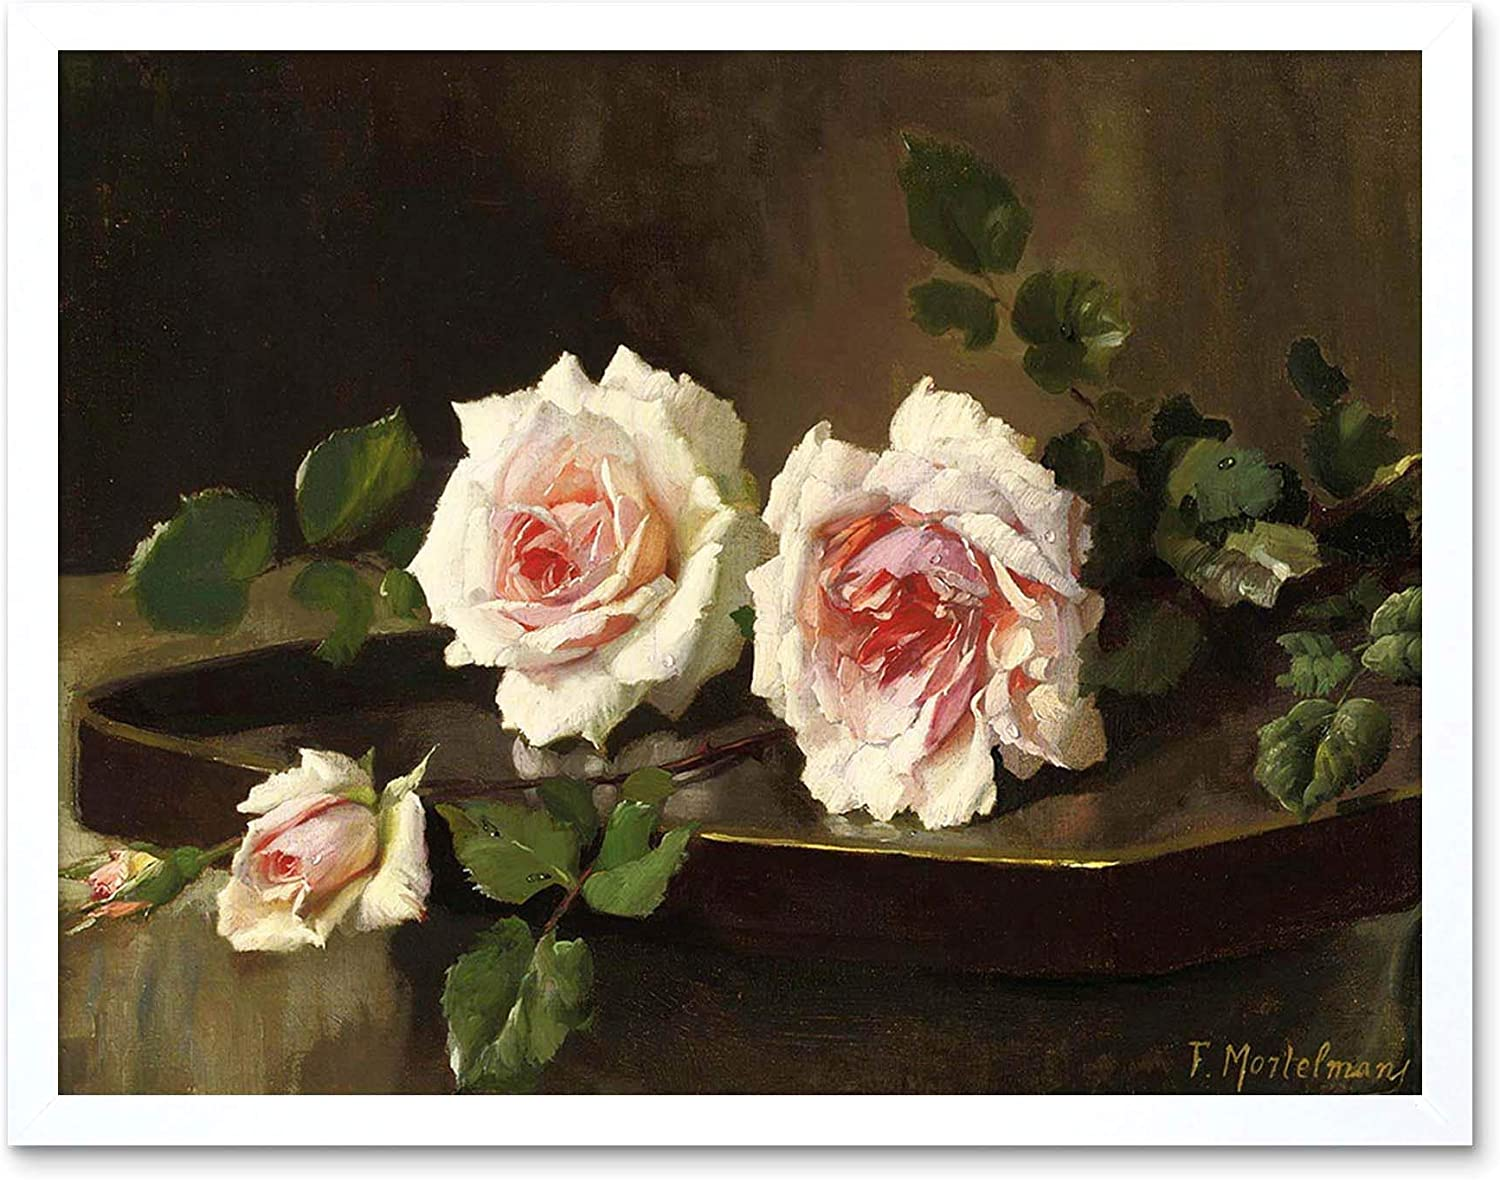 Painting Mortelmans Two Pink Prince Bulgaria Roses Art Print Framed Poster Wall Decor 12x16 Inch Amazon Ca Home Kitchen